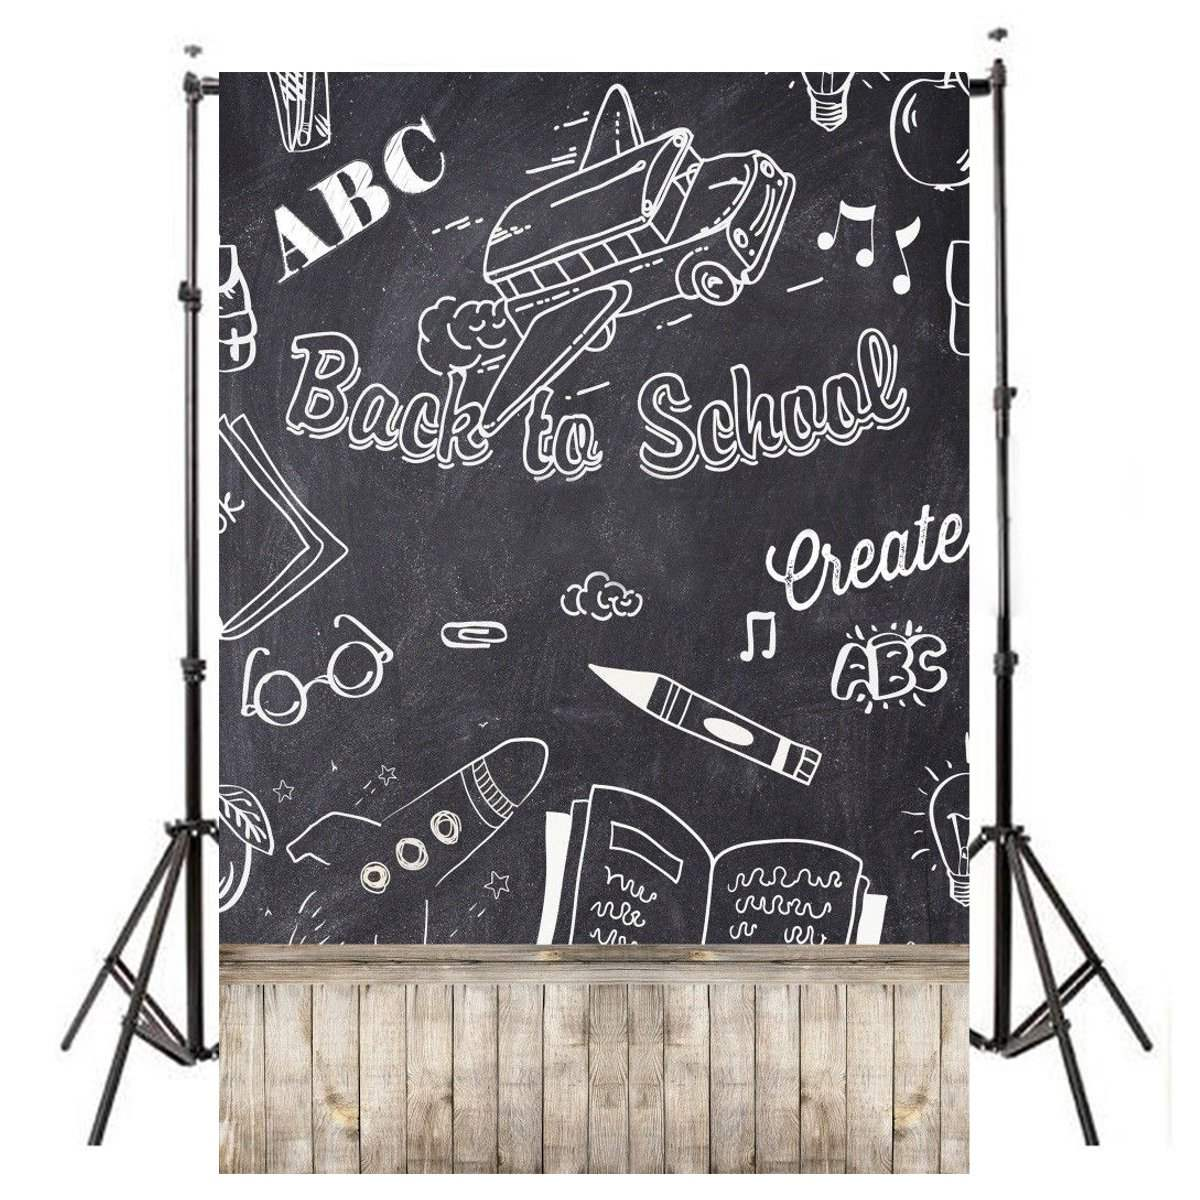 150X90cm Back To School Chalkboard Photography Backgrounds Vinyl Studio Photo Backdrops 2017 New Arrival